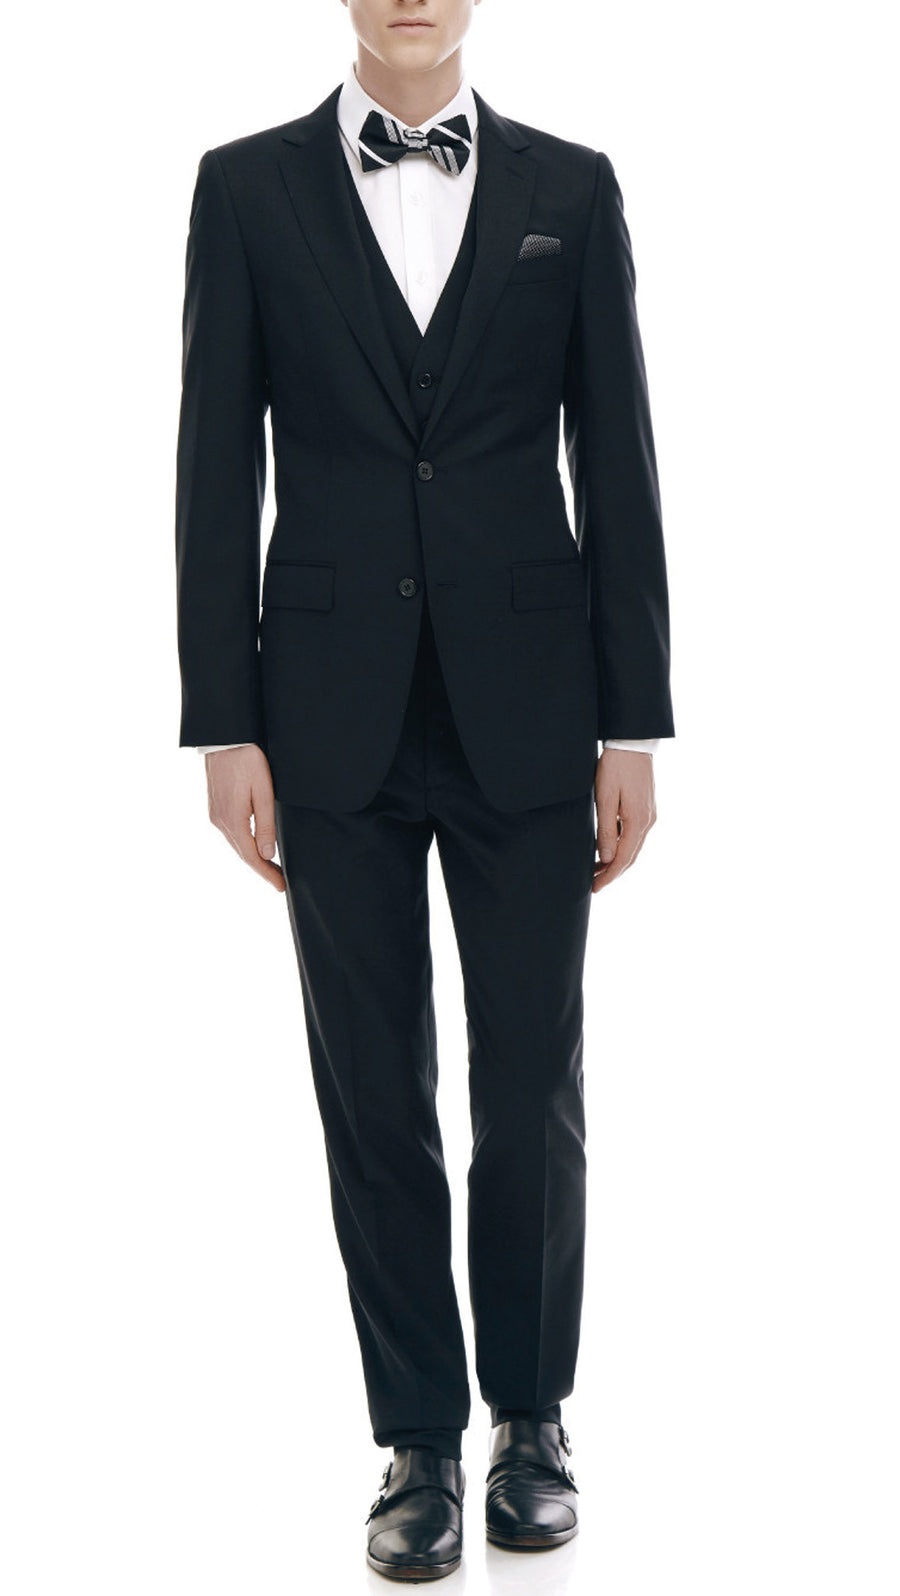 All-Purpose Black Suit FREE SHIRT + TIE/BOW TIE + POCKET HANKIE